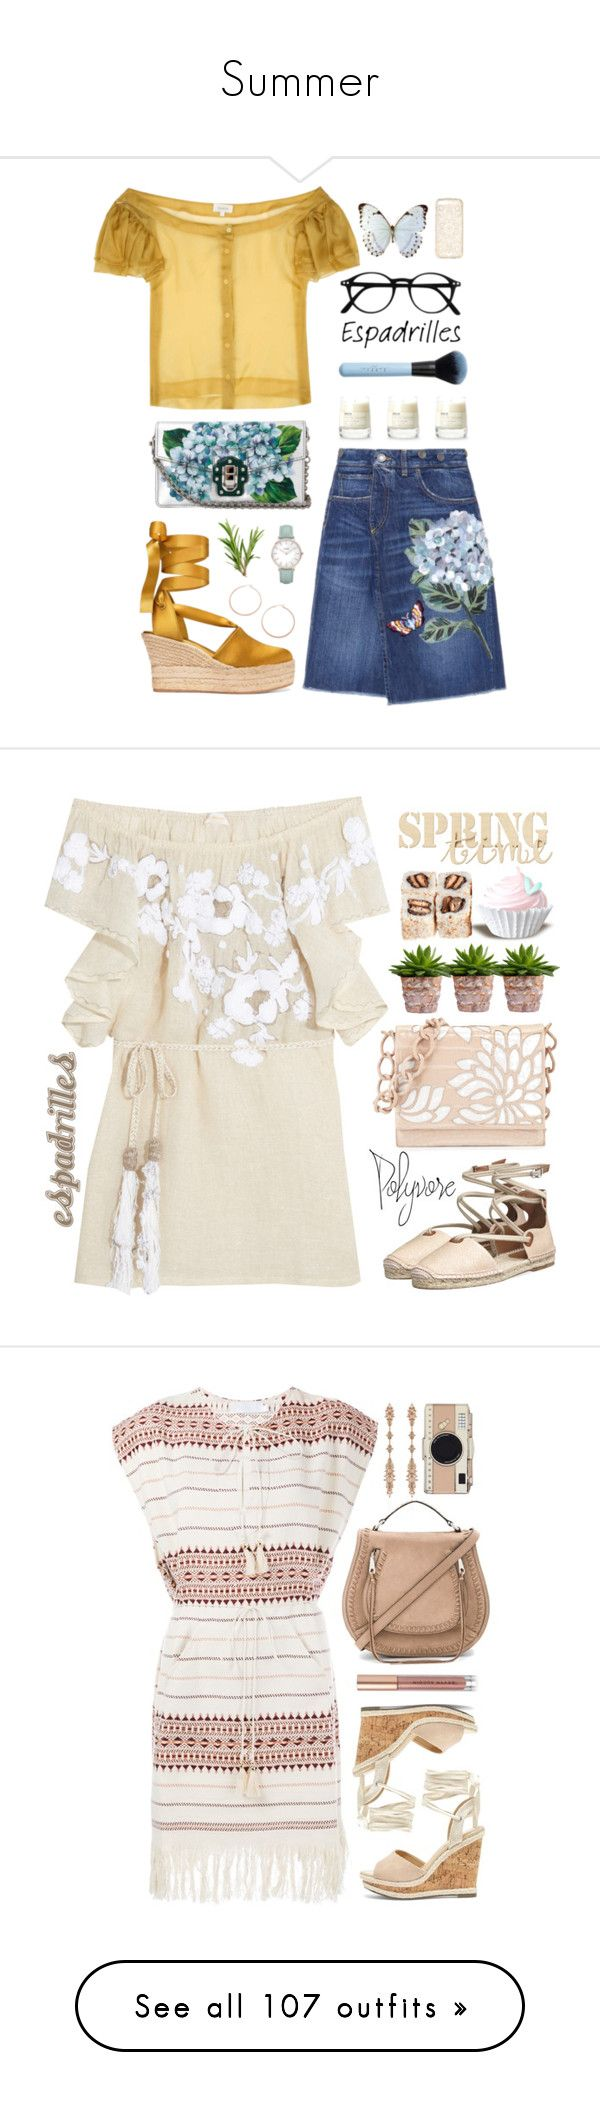 """Summer"" by evgeniavega ❤ liked on Polyvore featuring Dolce&Gabbana, Isa Arfen, Tory Burch, Forever 21, Le Labo, Jennifer Zeuner, CLUSE, espadrilles, Emamò and Nancy Gonzalez"